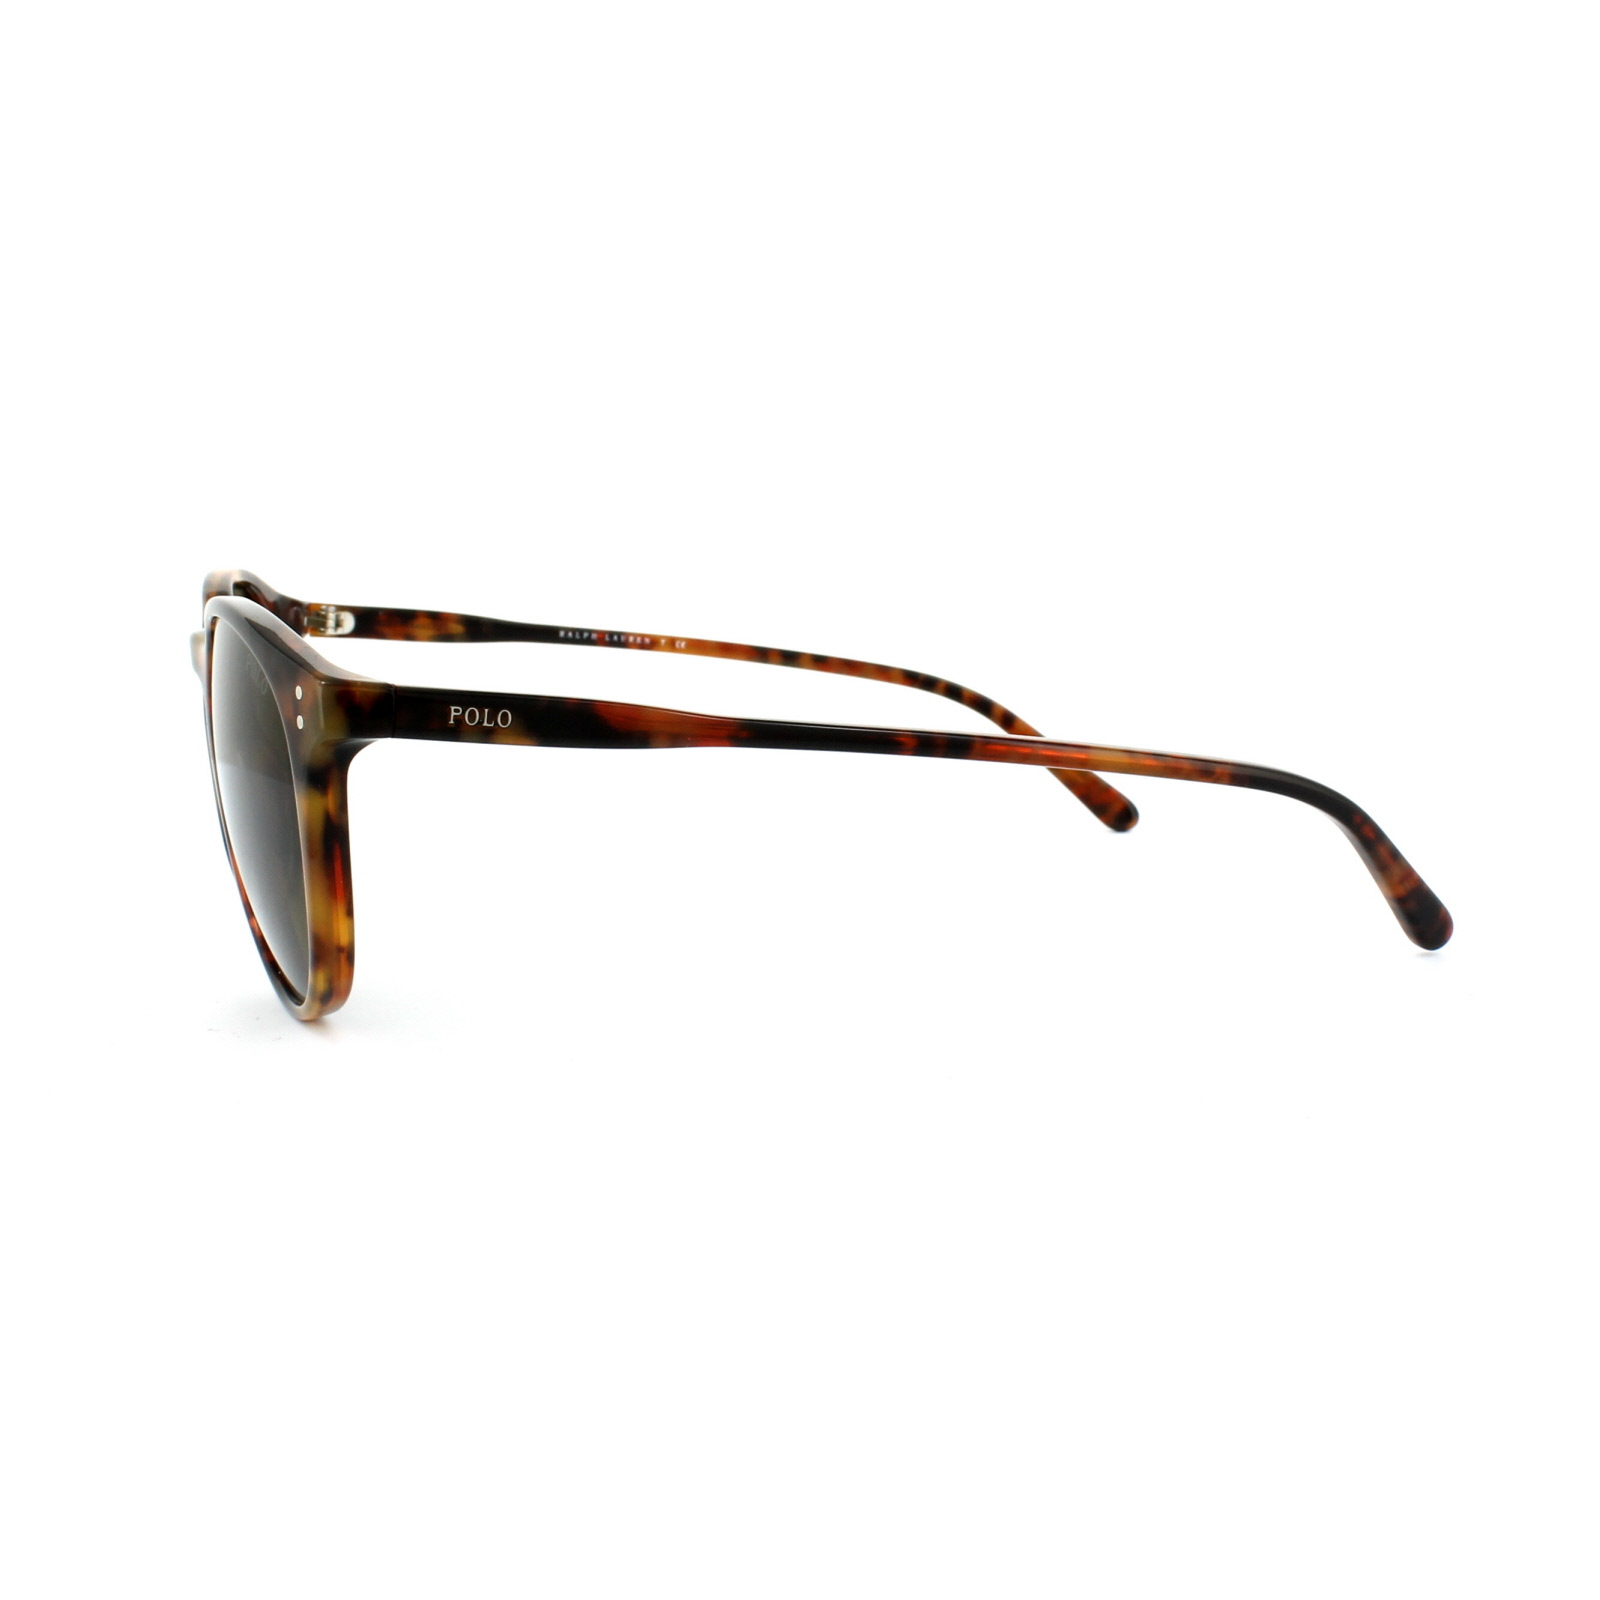 470bd997b99 Polo Ralph Lauren Sunglasses 4110 501773 Havana Brown 8053672557848 ...